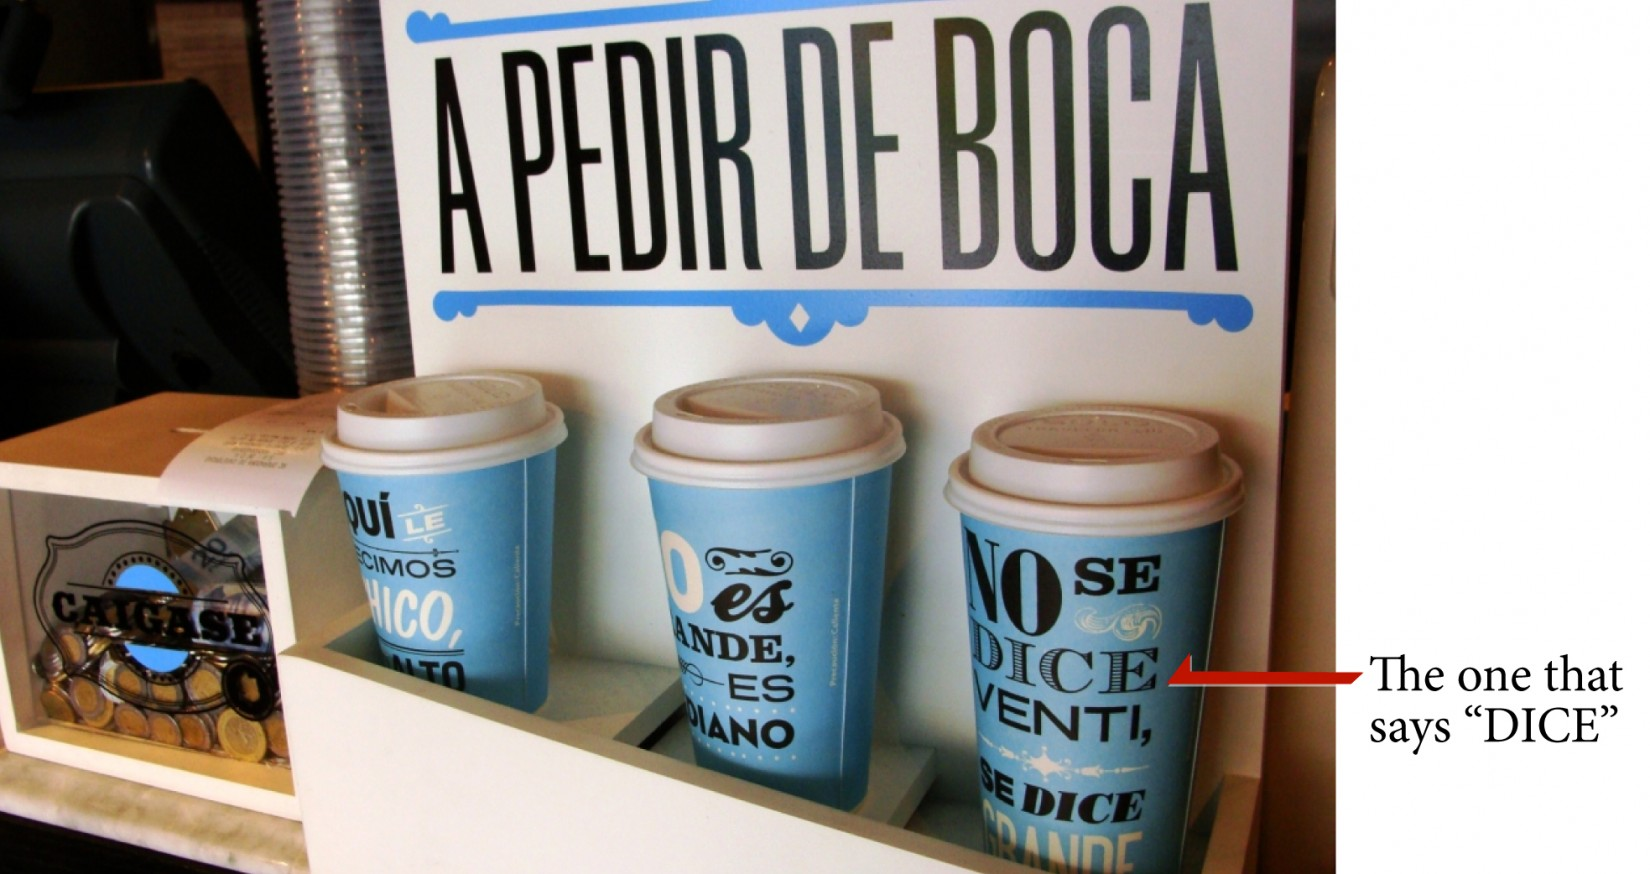 One of the fonts from a 'Cielito Querido Caf�' cup